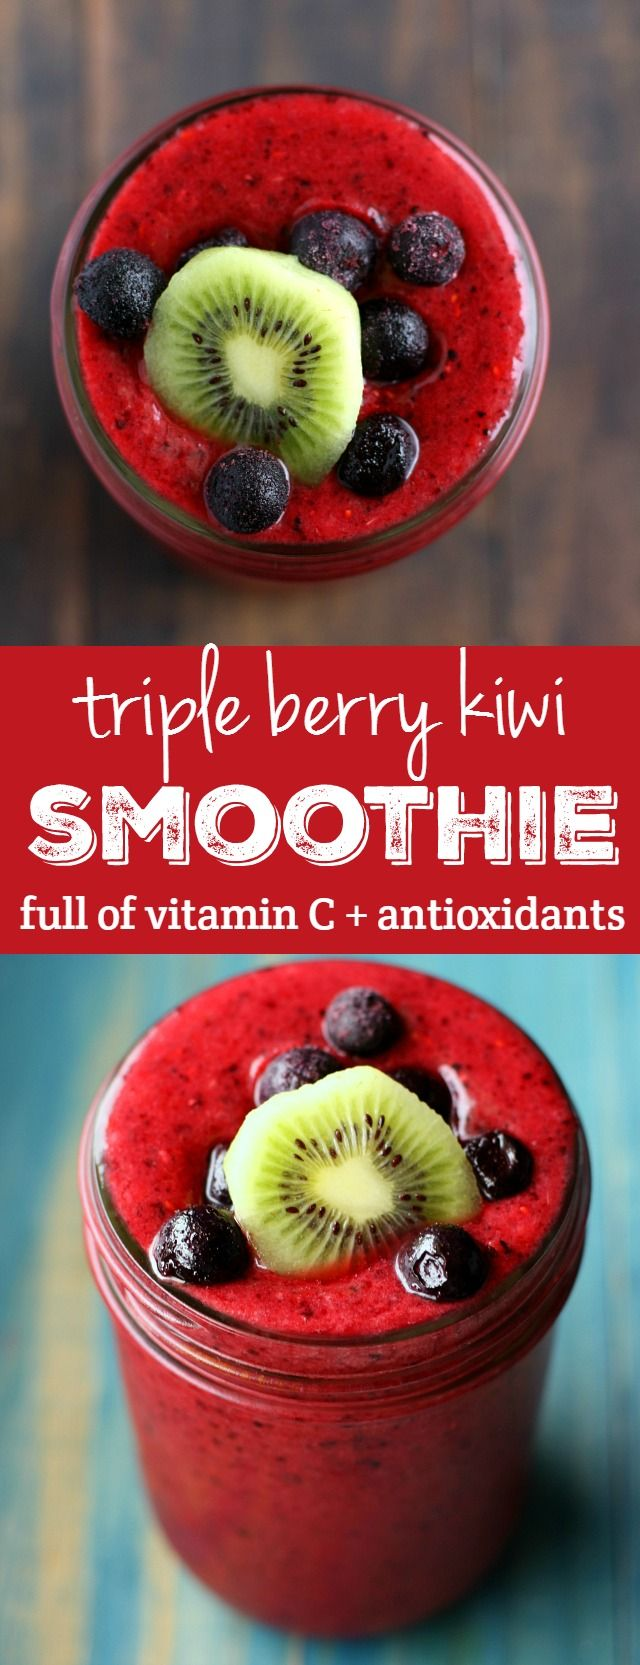 This triple berry smoothie is full of antioxidants and vitamin c to help keep you healthy.